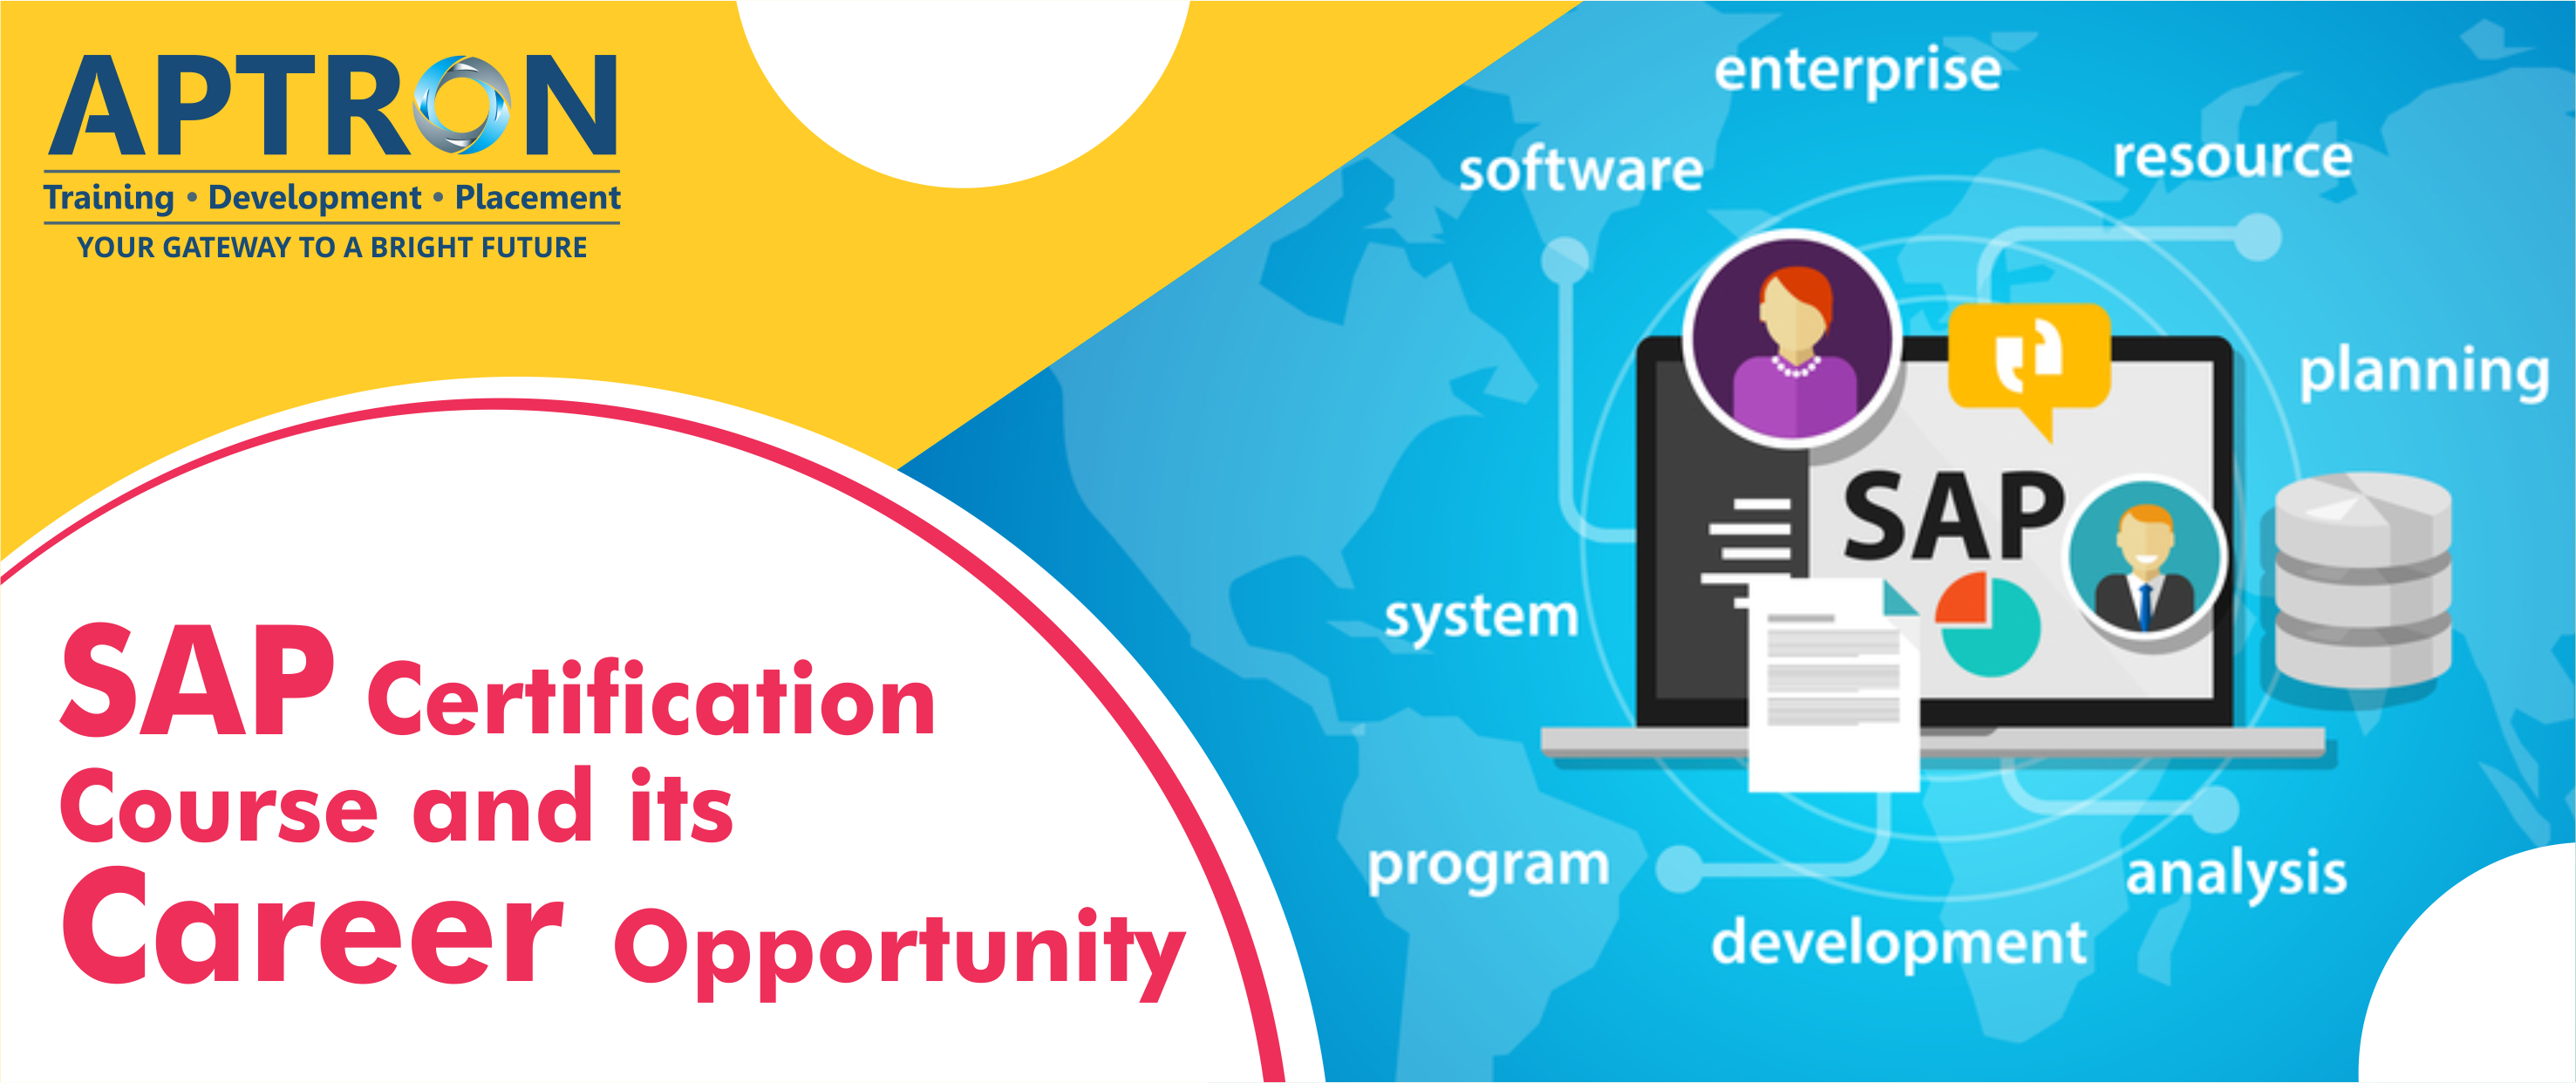 Sap Certification Course And Its Career Opportunity At Aptron